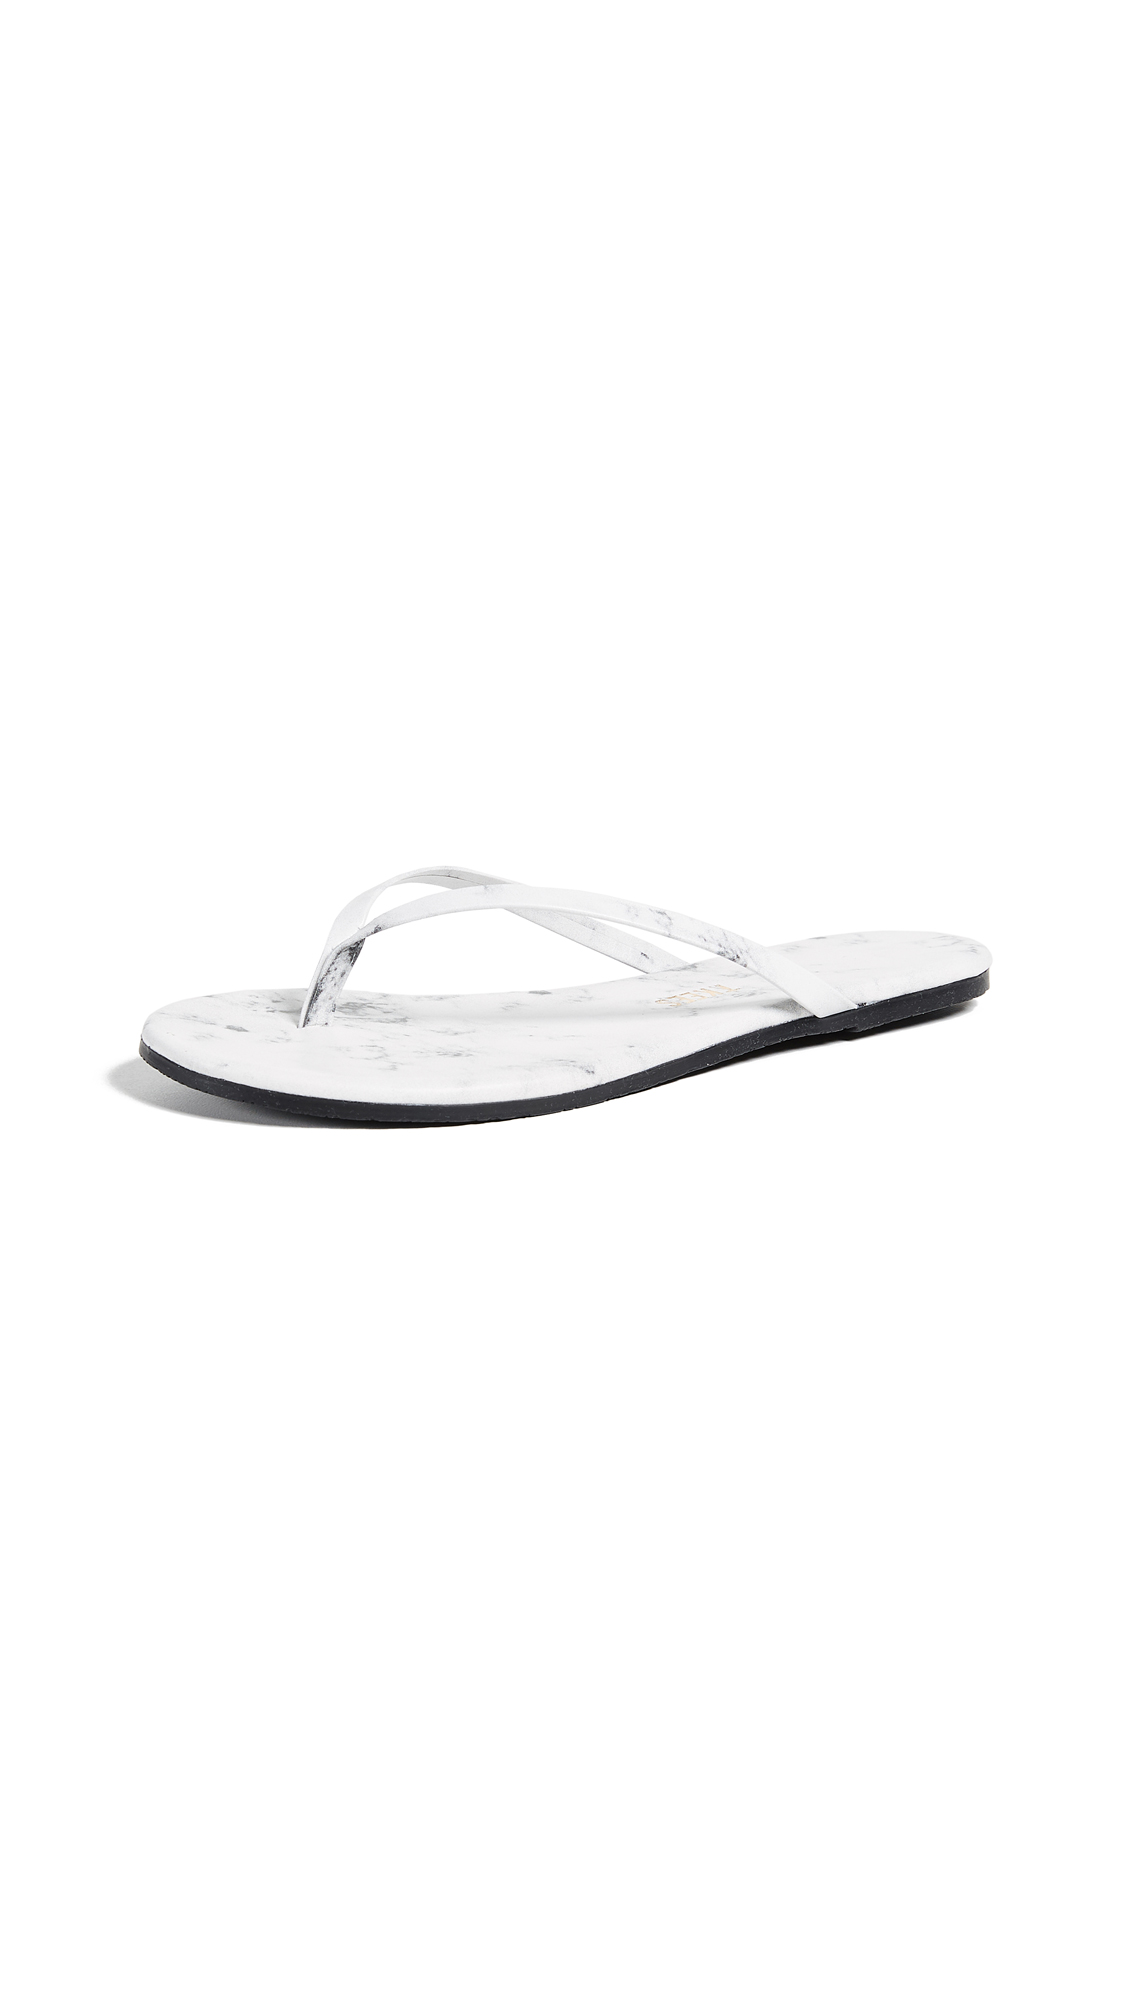 TKEES Marble Flip Flops - White Pepper